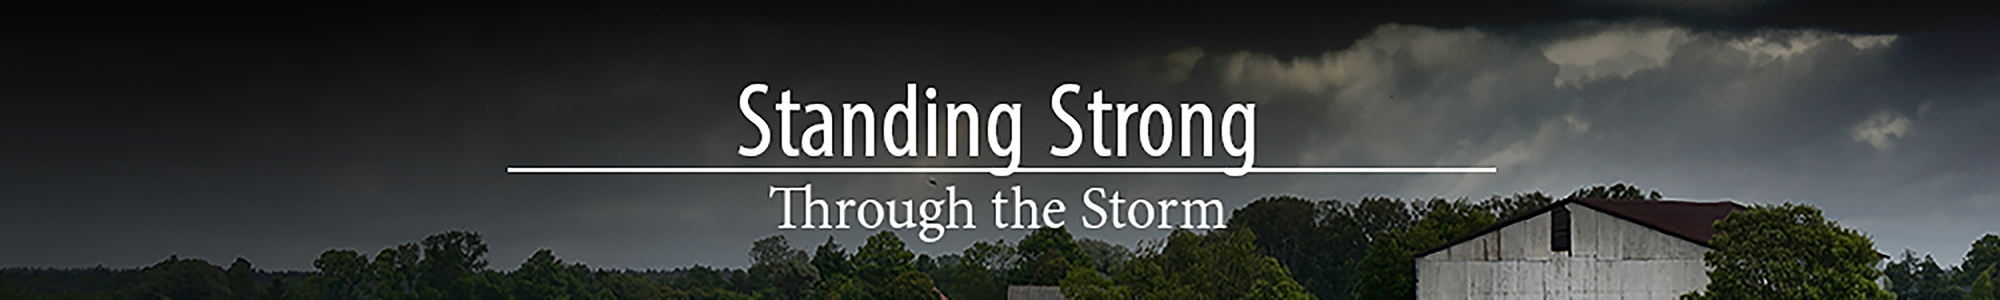 Standing Strong Through the Storm